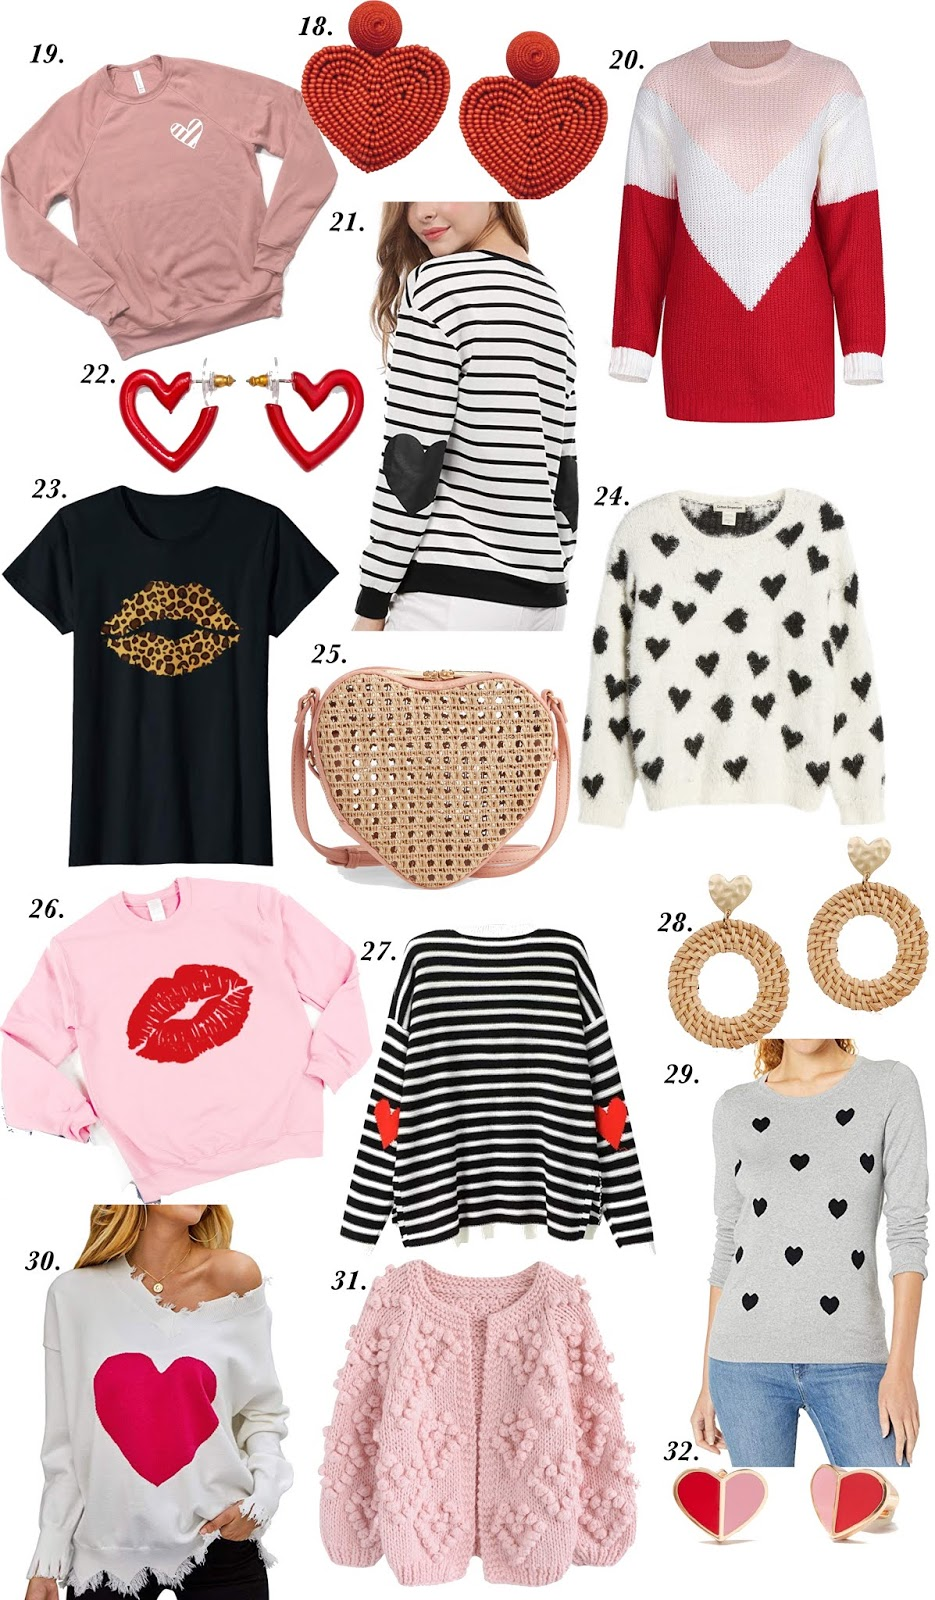 All Things Hearts! Valentine Heart Pieces - Something Delightful Blog #ValentinesDay #VDay #ValentinesDay2020 #Hearts #ValentineGifts #BeMyValentine #HeartPieces #HeartSweater